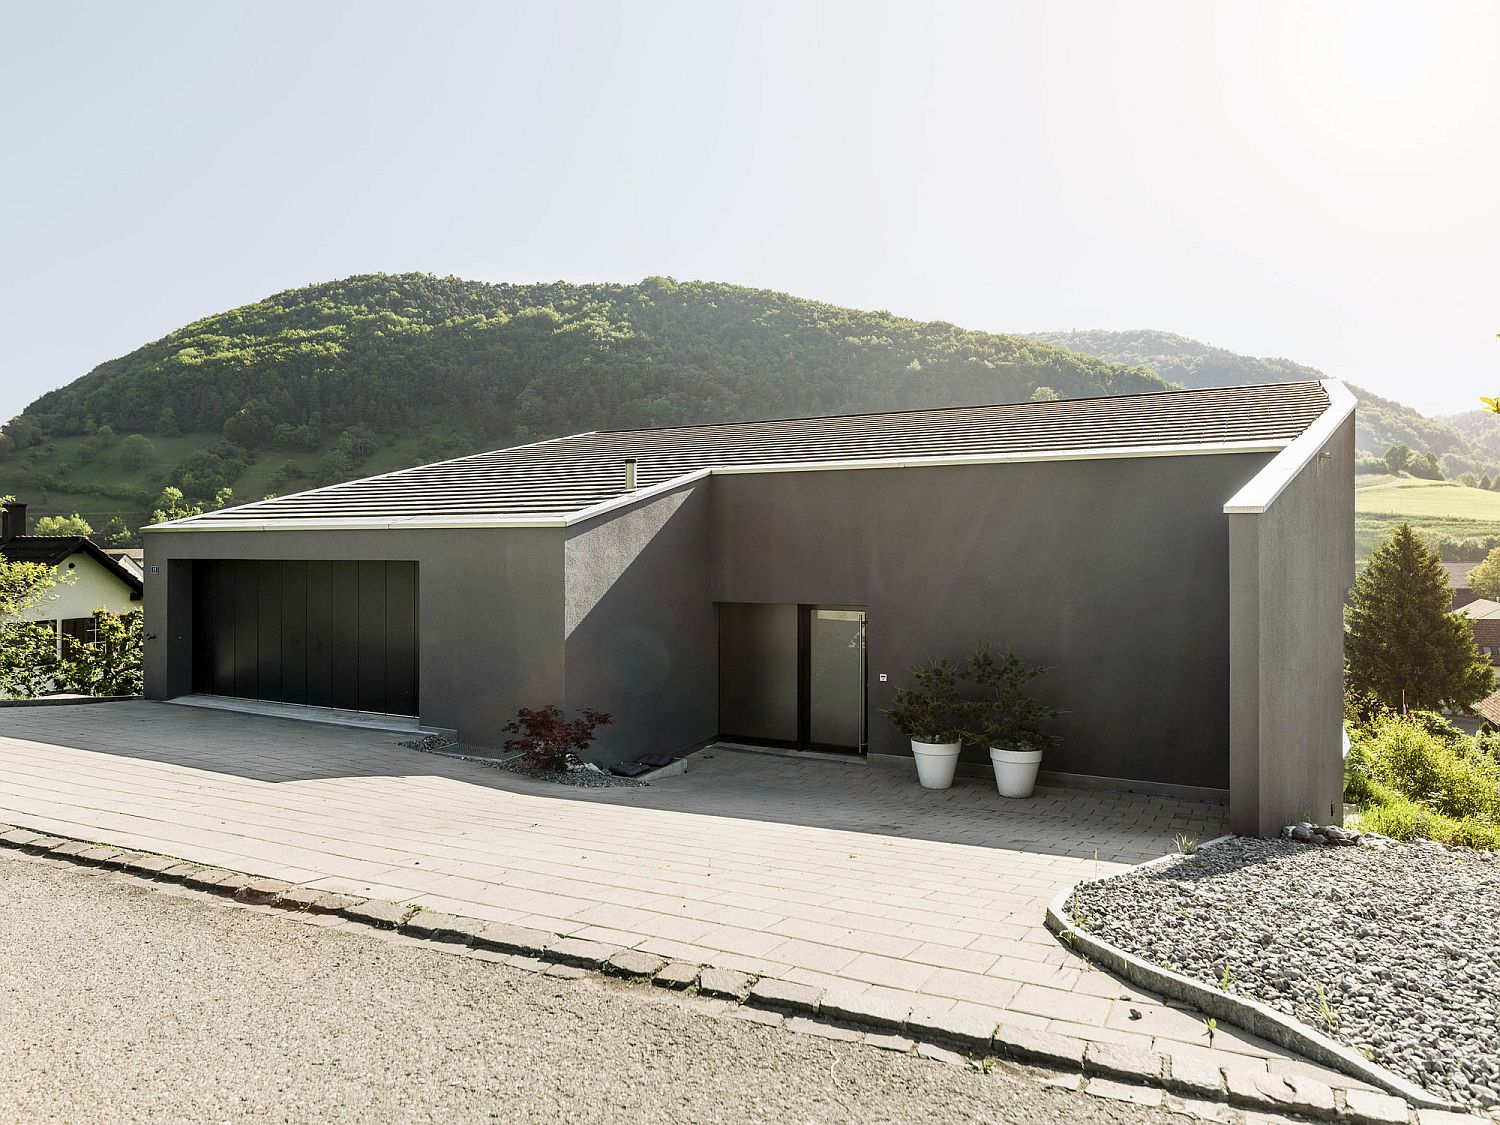 Private street facade of the Single Family House on a Slope